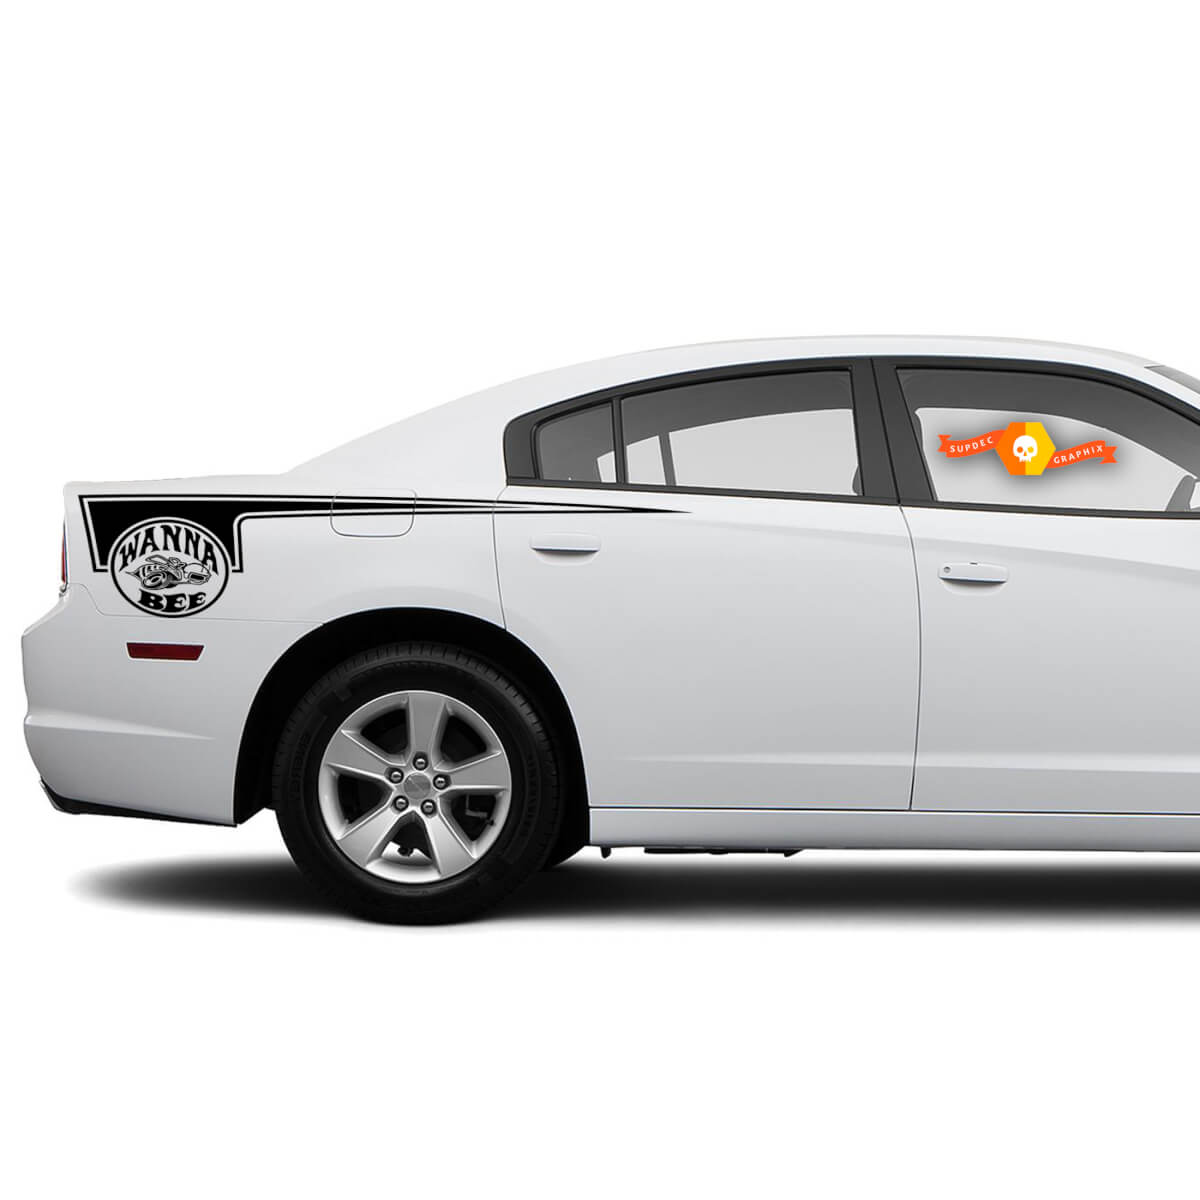 Dodge Charger Super Bee Wanna Bee side Hatchet Stripe Decal Sticker graphics fits to models 2011-2014